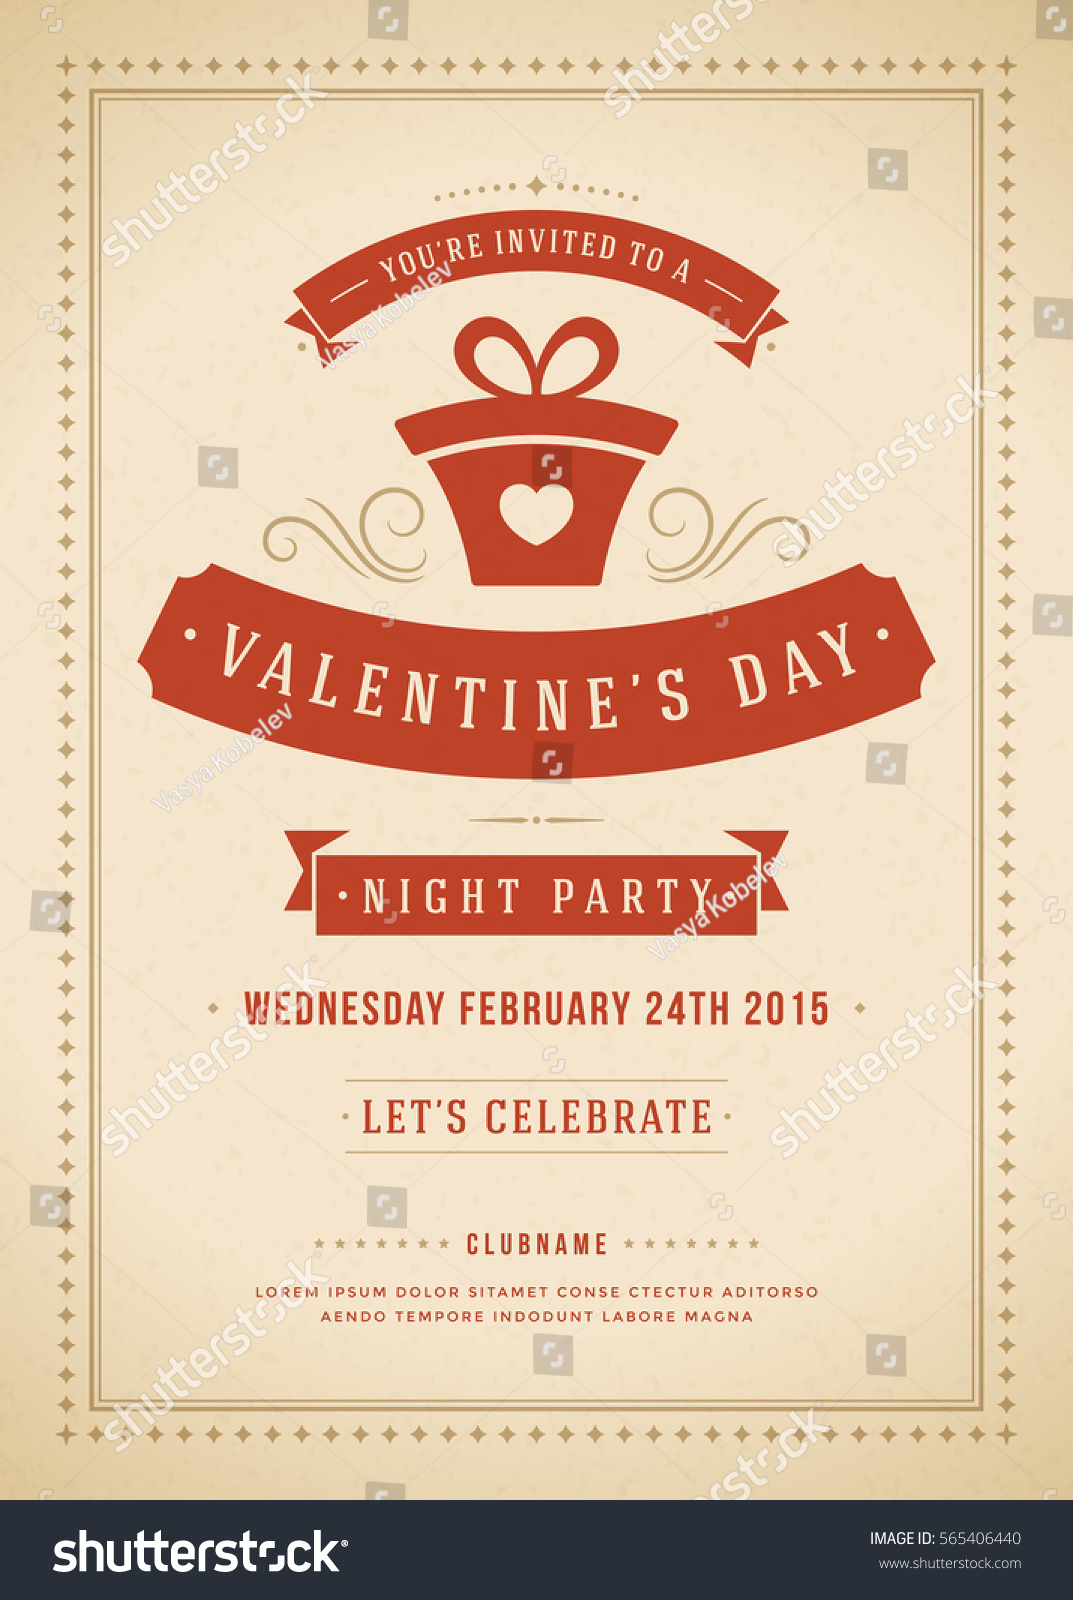 Happy Valentines Day Party Invitation or Poster Vector illustration ...